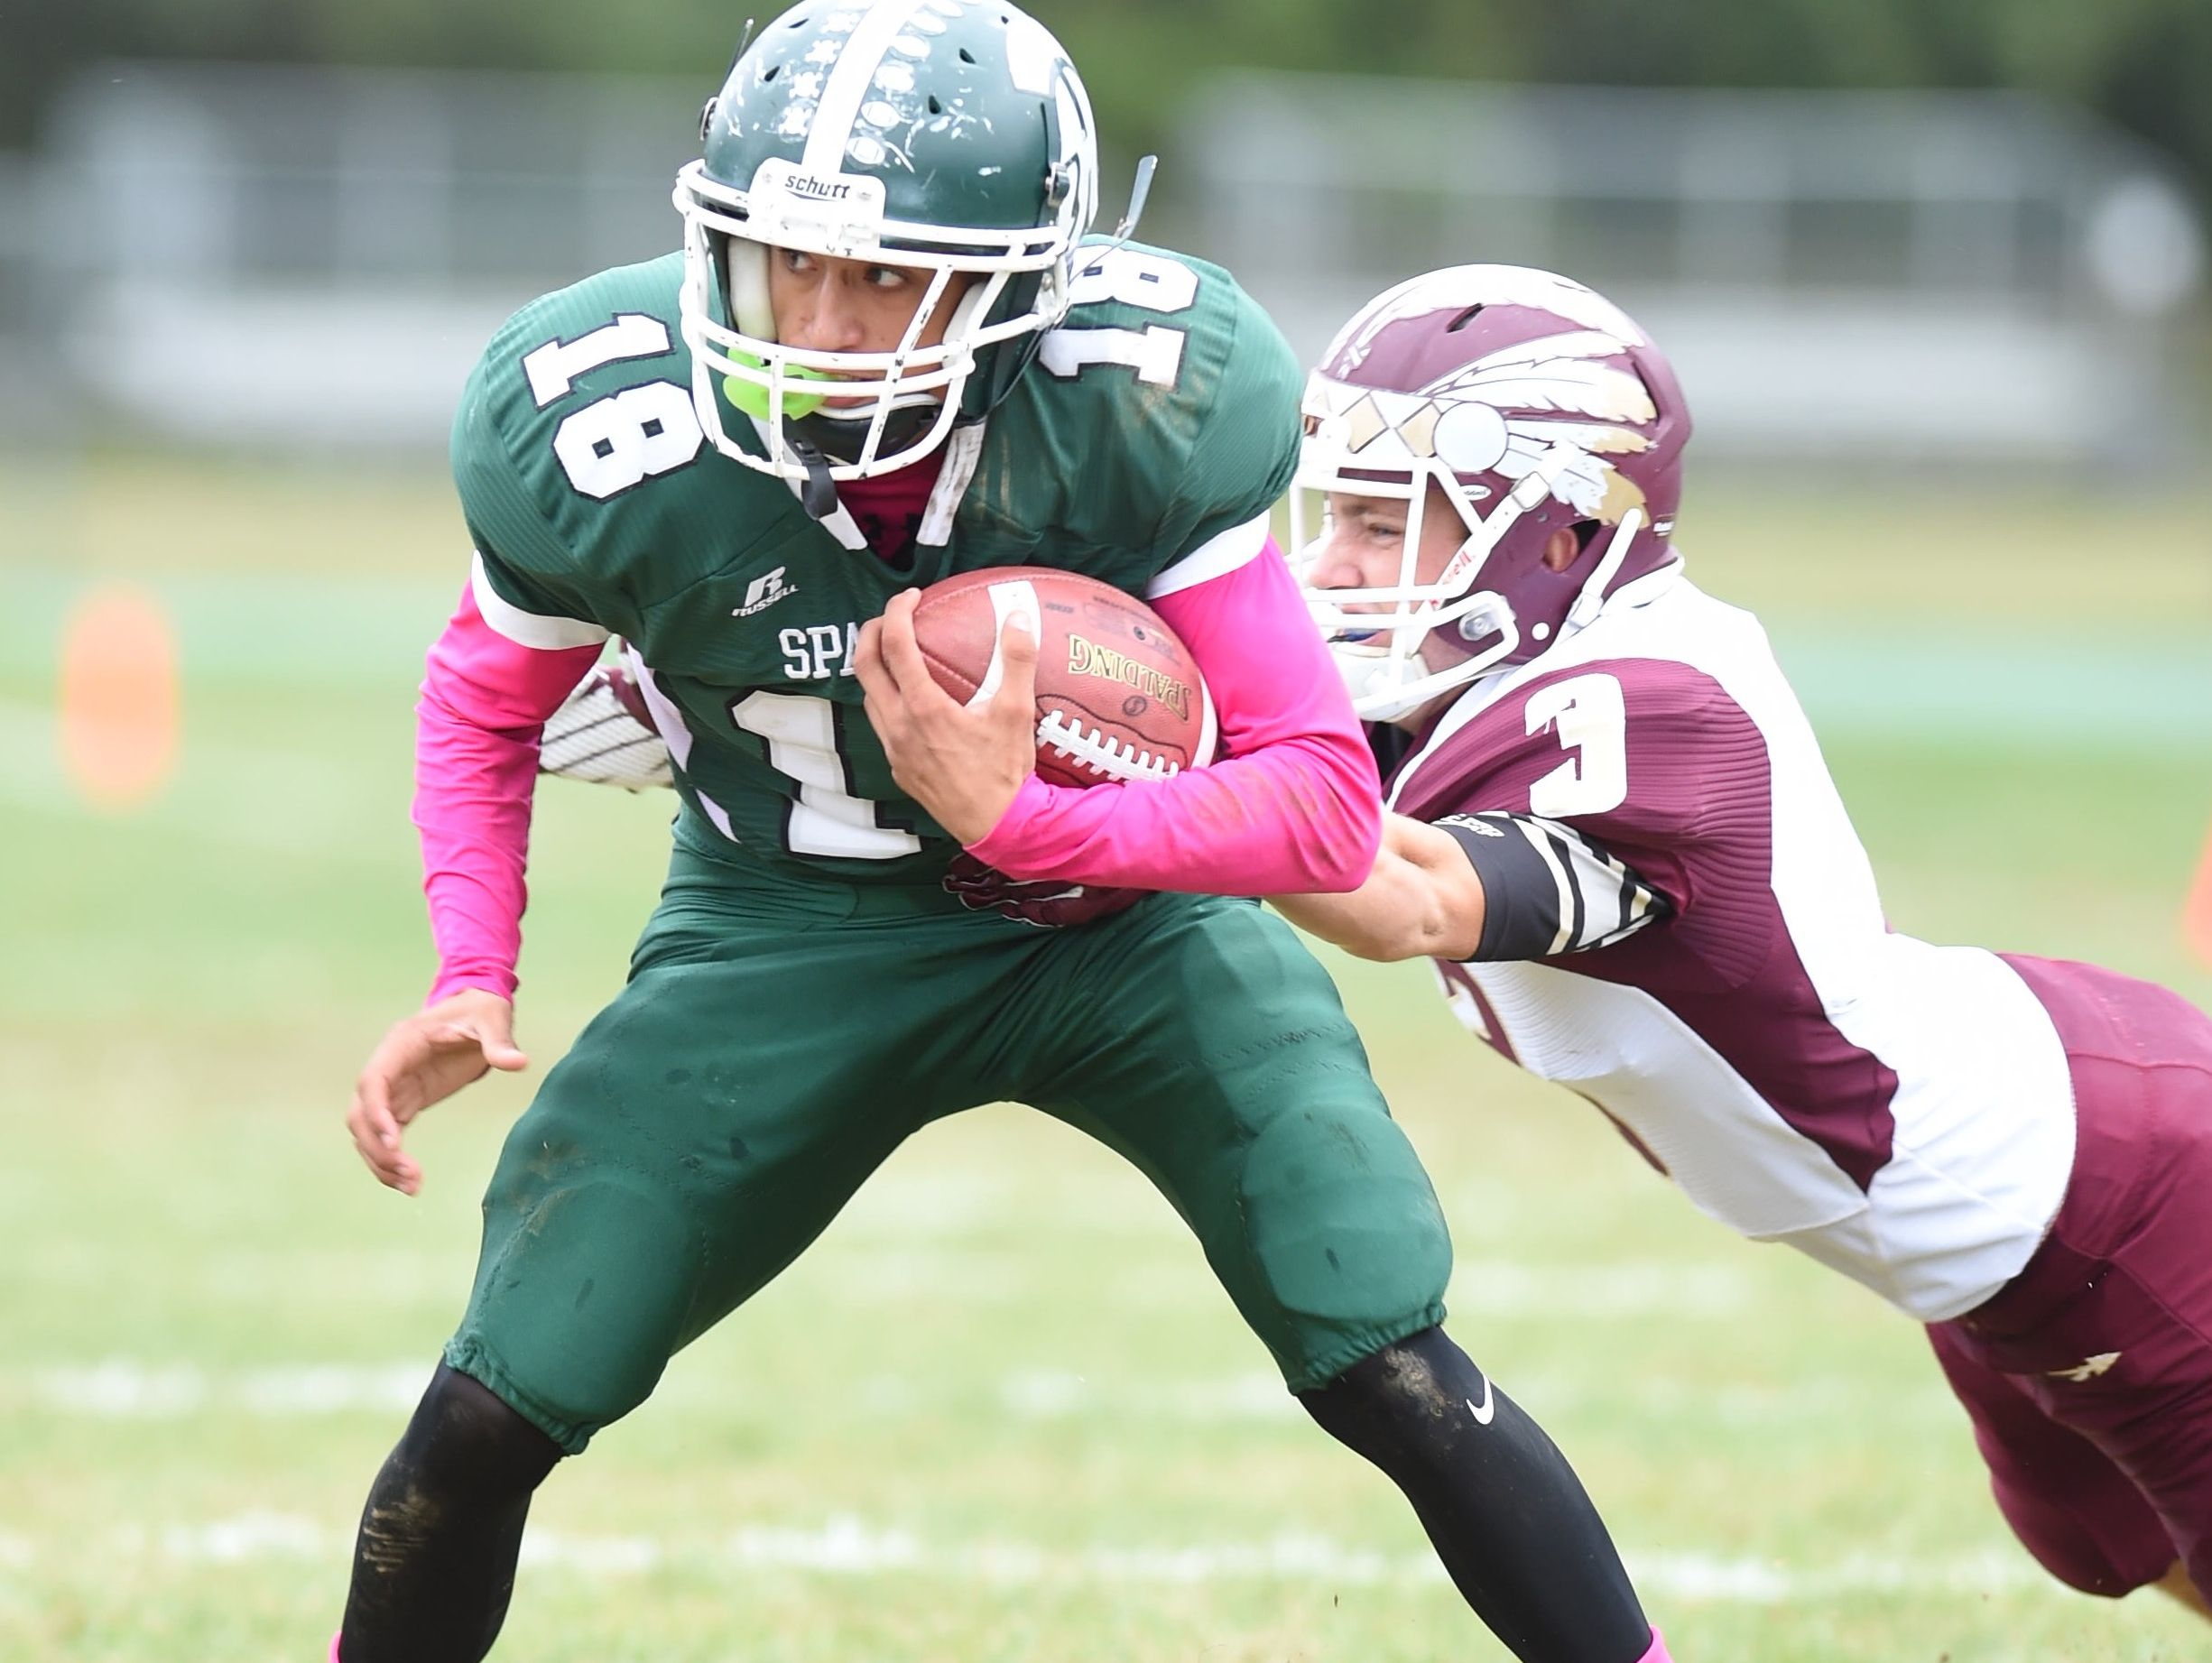 Spackenkill's Marlon Brooks attempts to shake off O'Neill's Tully Boylan during Saturday's game at Spackenkill.